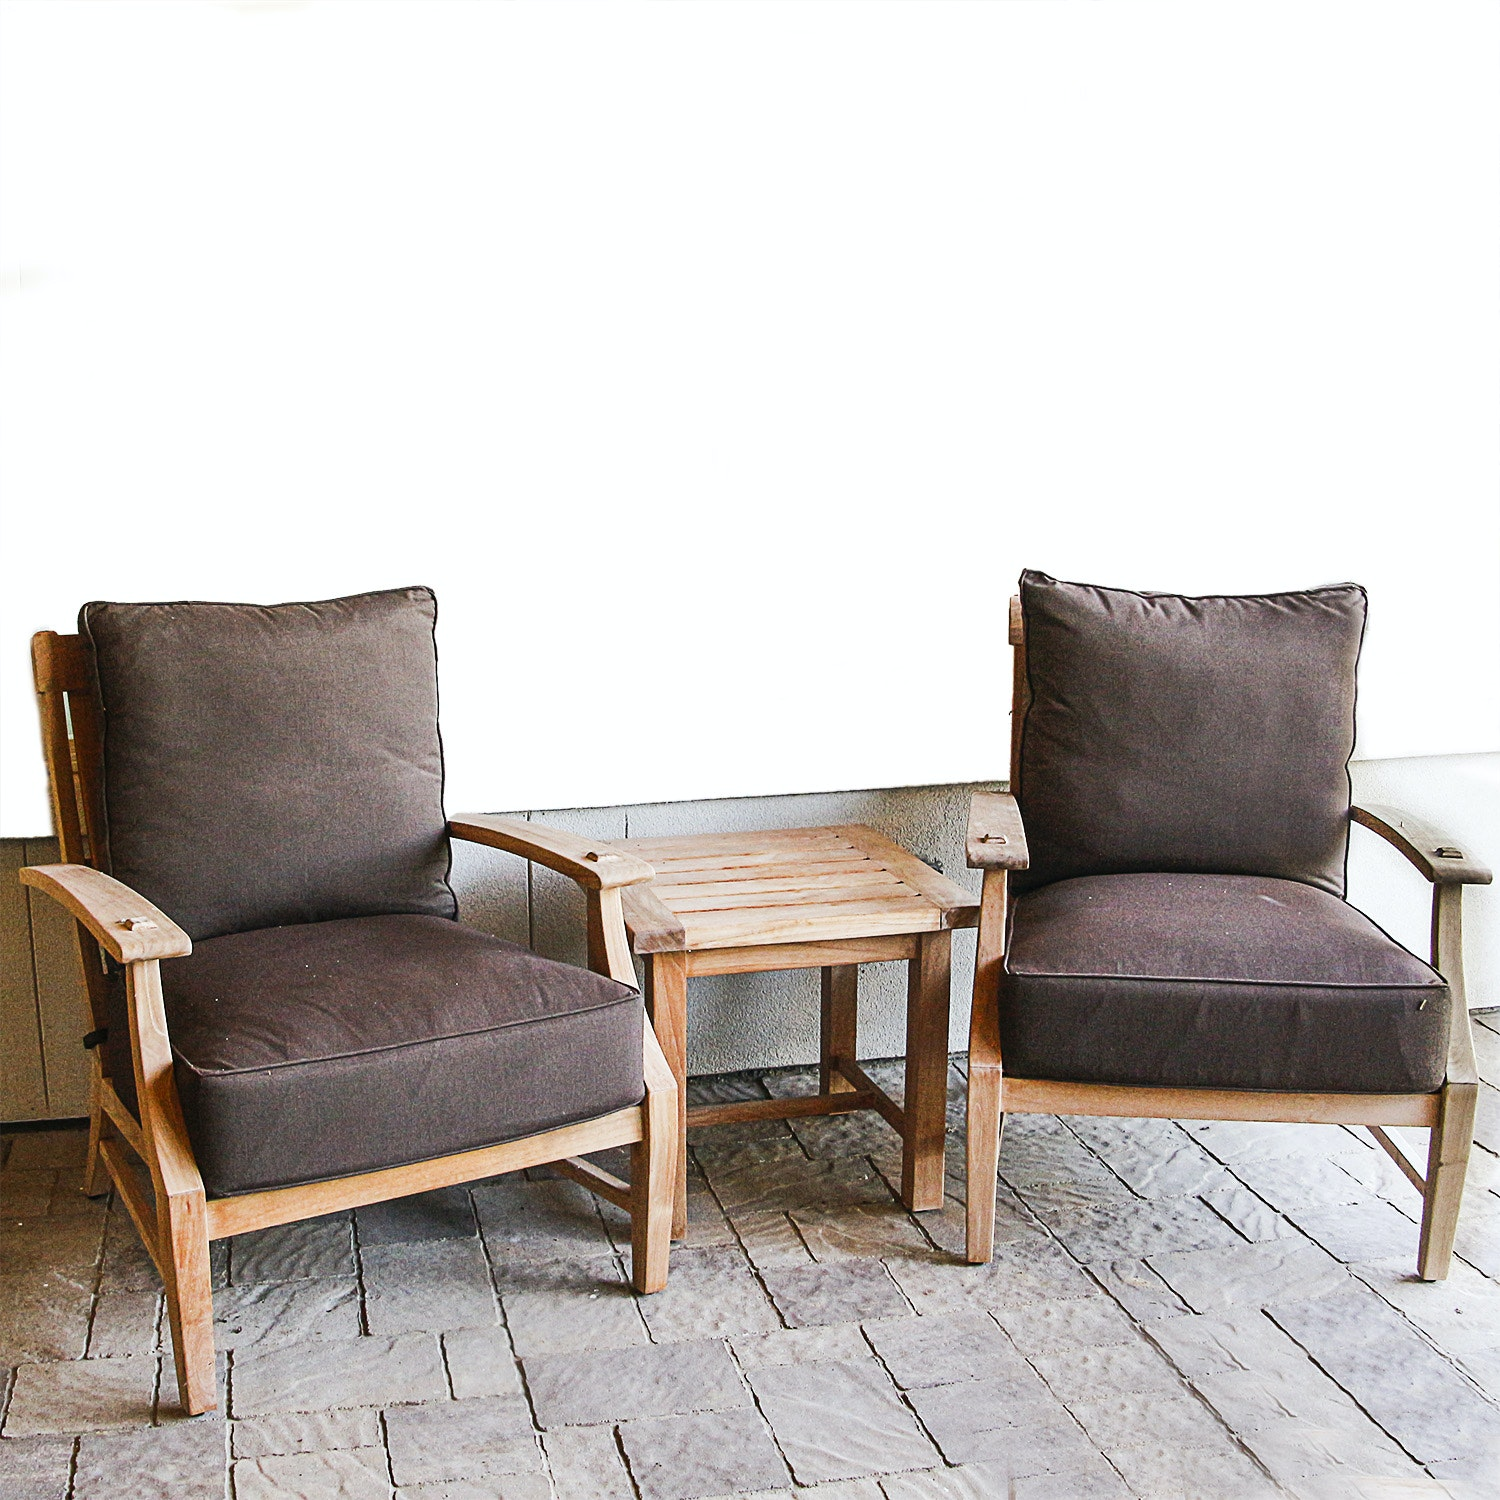 Summer Classics Wooden Patio Armchairs and Side Table